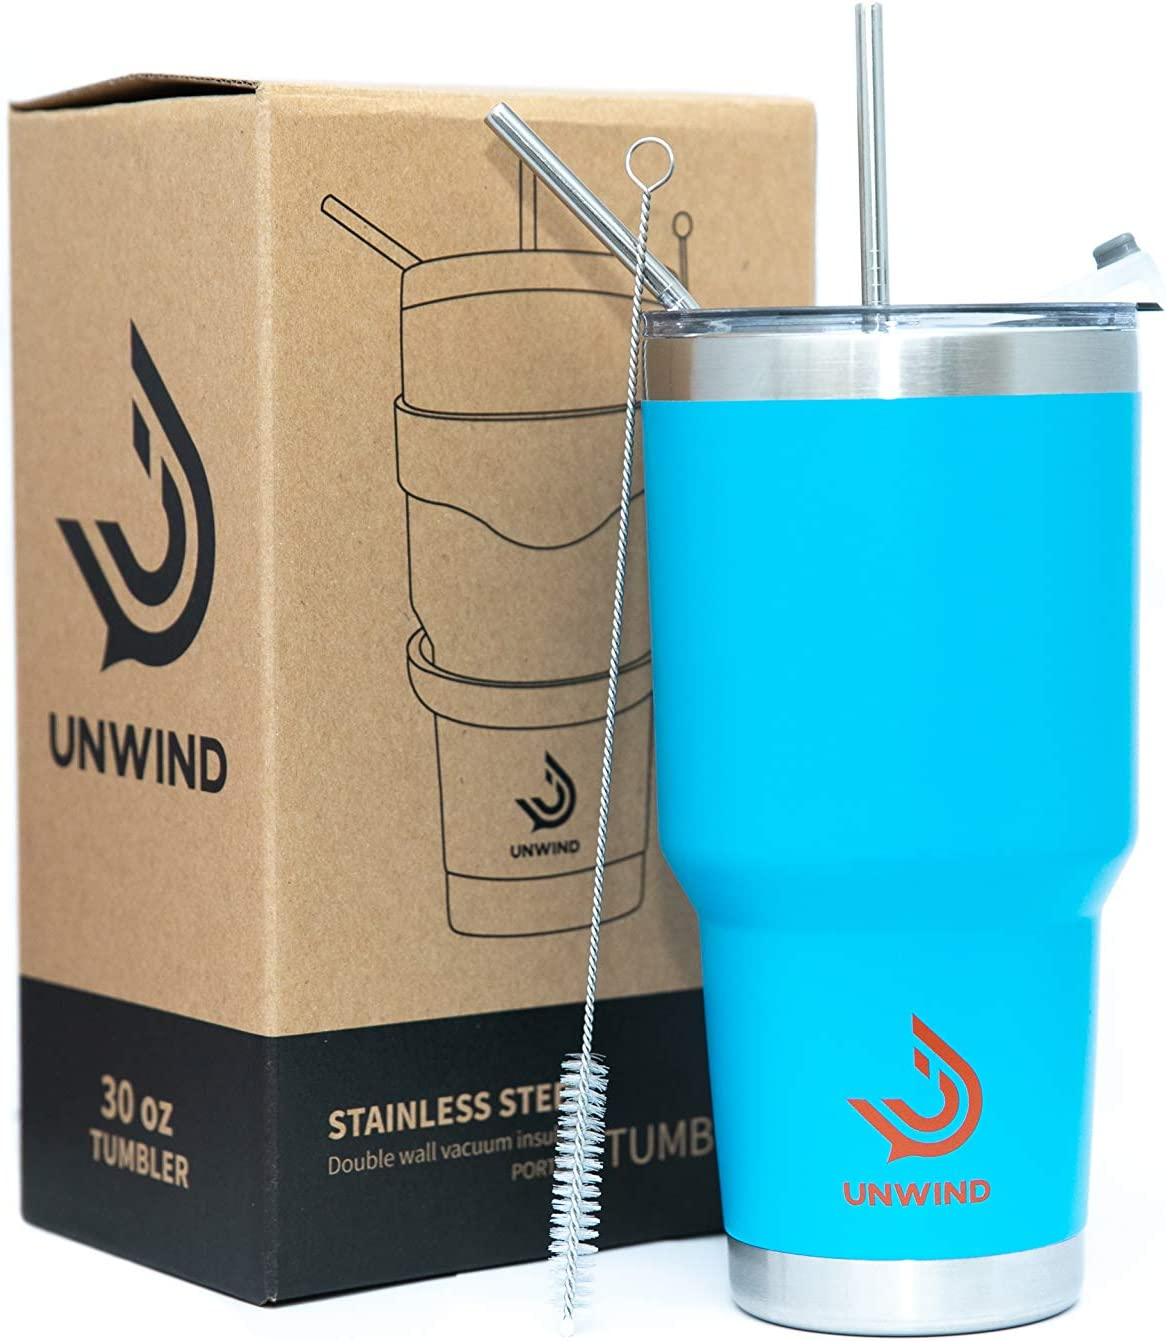 Unwind 30 oz Stainless Steel Tumbler Vacuum Insulated Coffee Cup Large Travel Mug Works Great for Ice Drinks and Hot Beverage - Blue